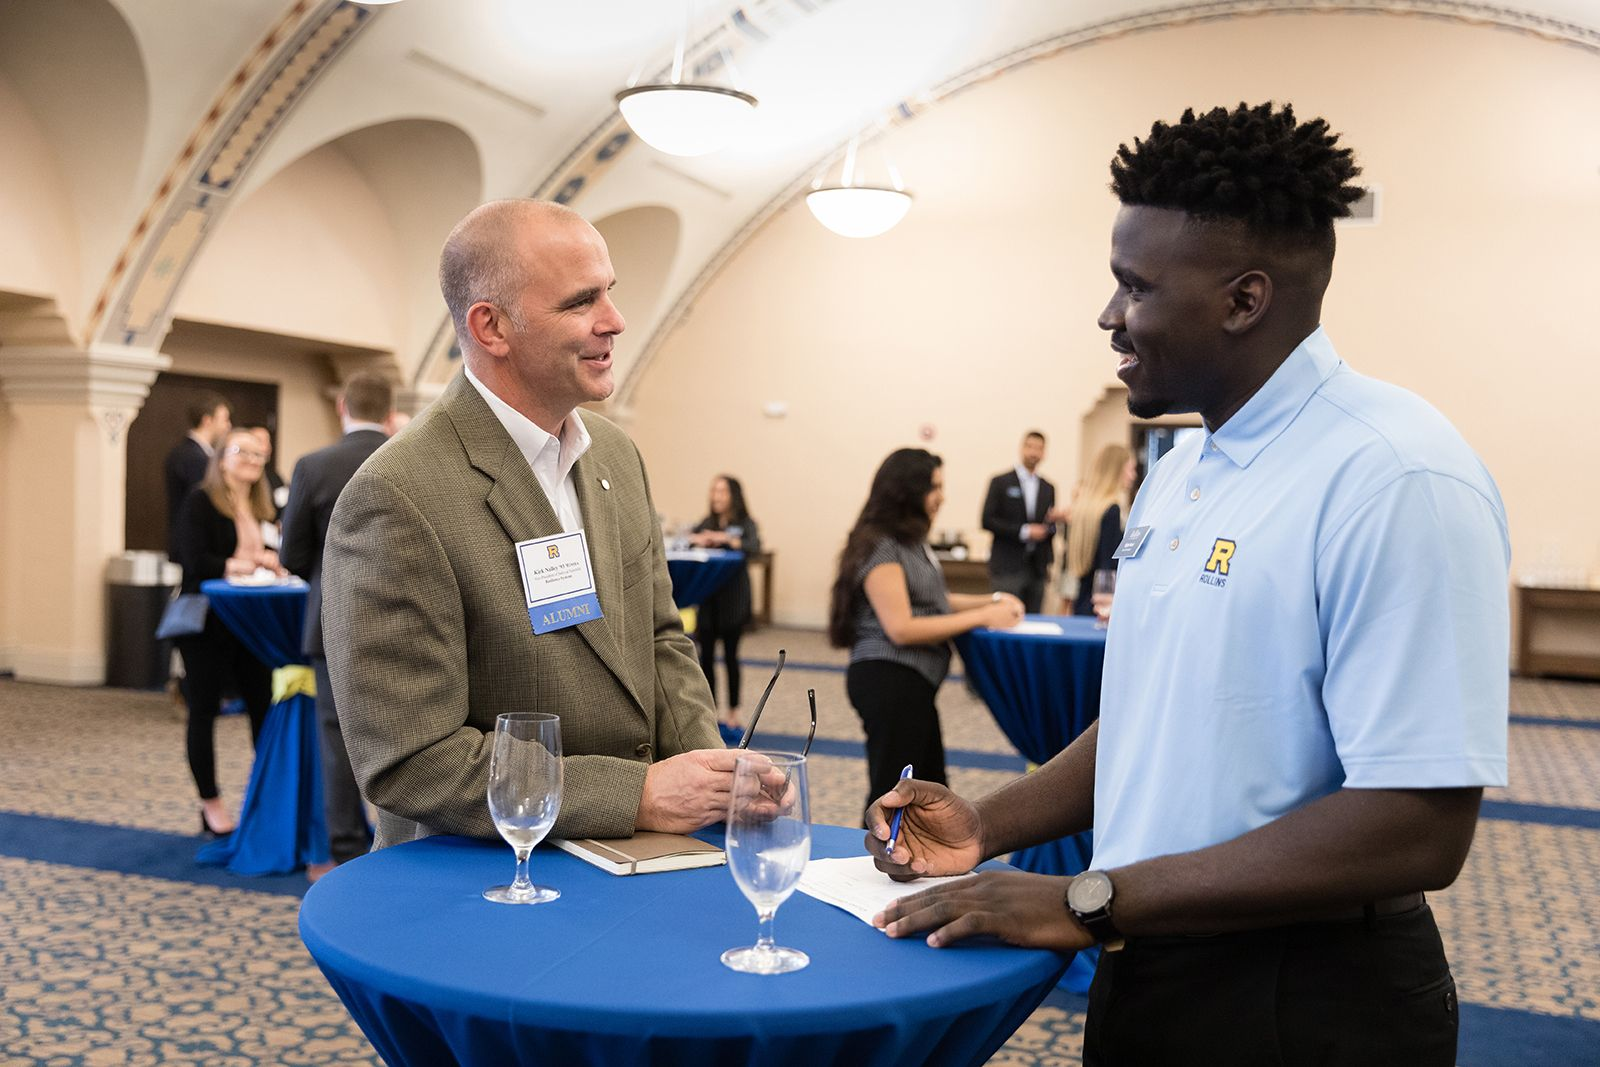 Kirk Nalley '93 '01MBA and Elijah Noel '20, a Rollins graduate and Rollins student, discuss international business careers.